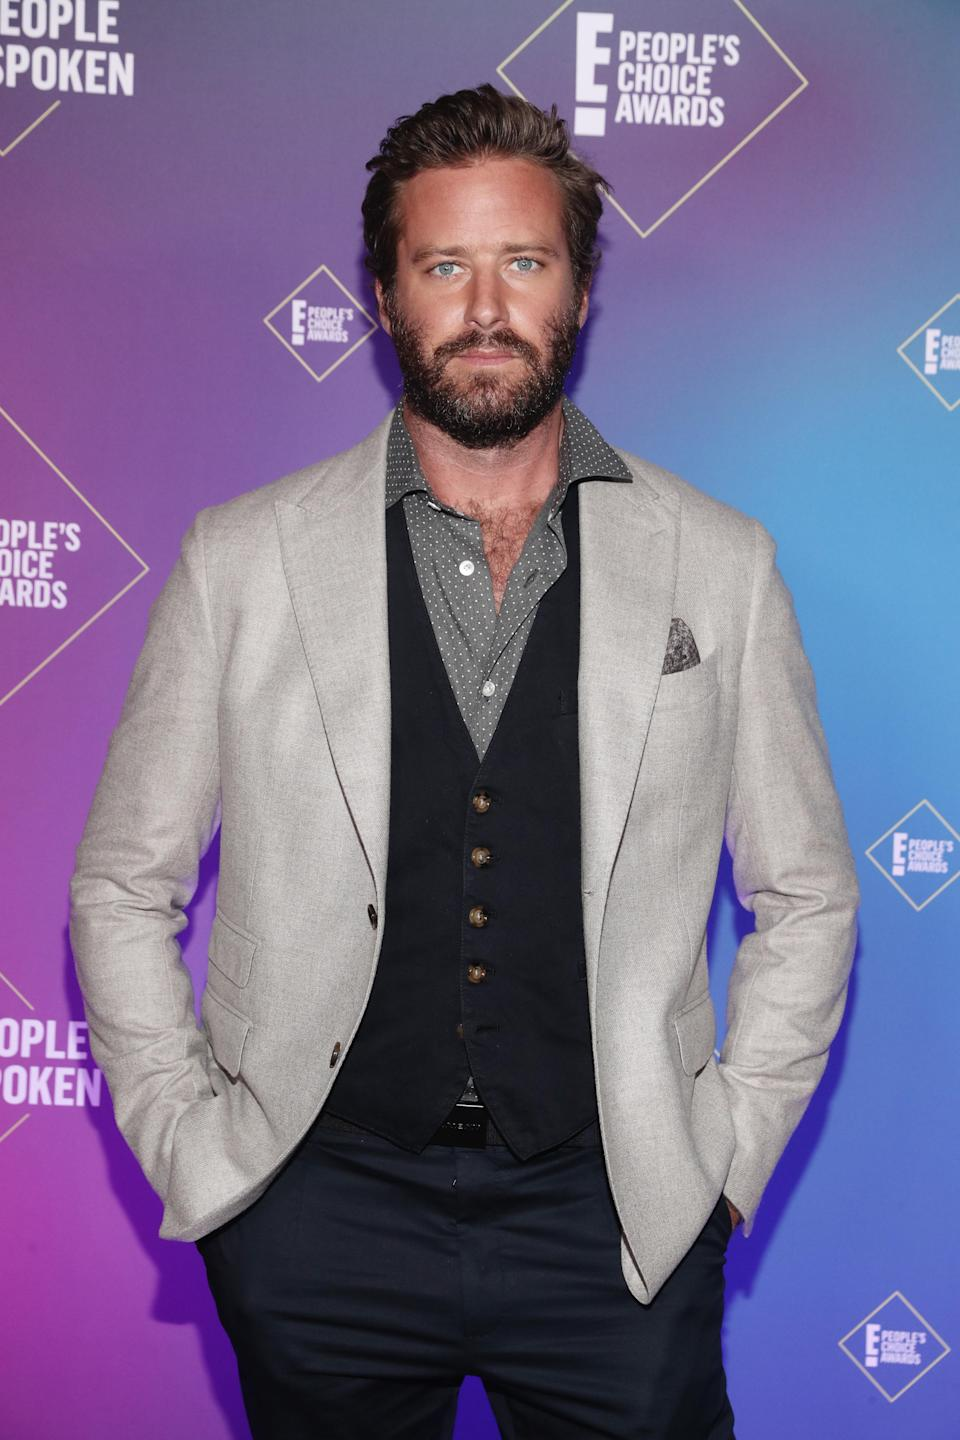 Armie Hammer at the the 2020 E! People's Choice Awards in Santa Monica, November 15, 2020.